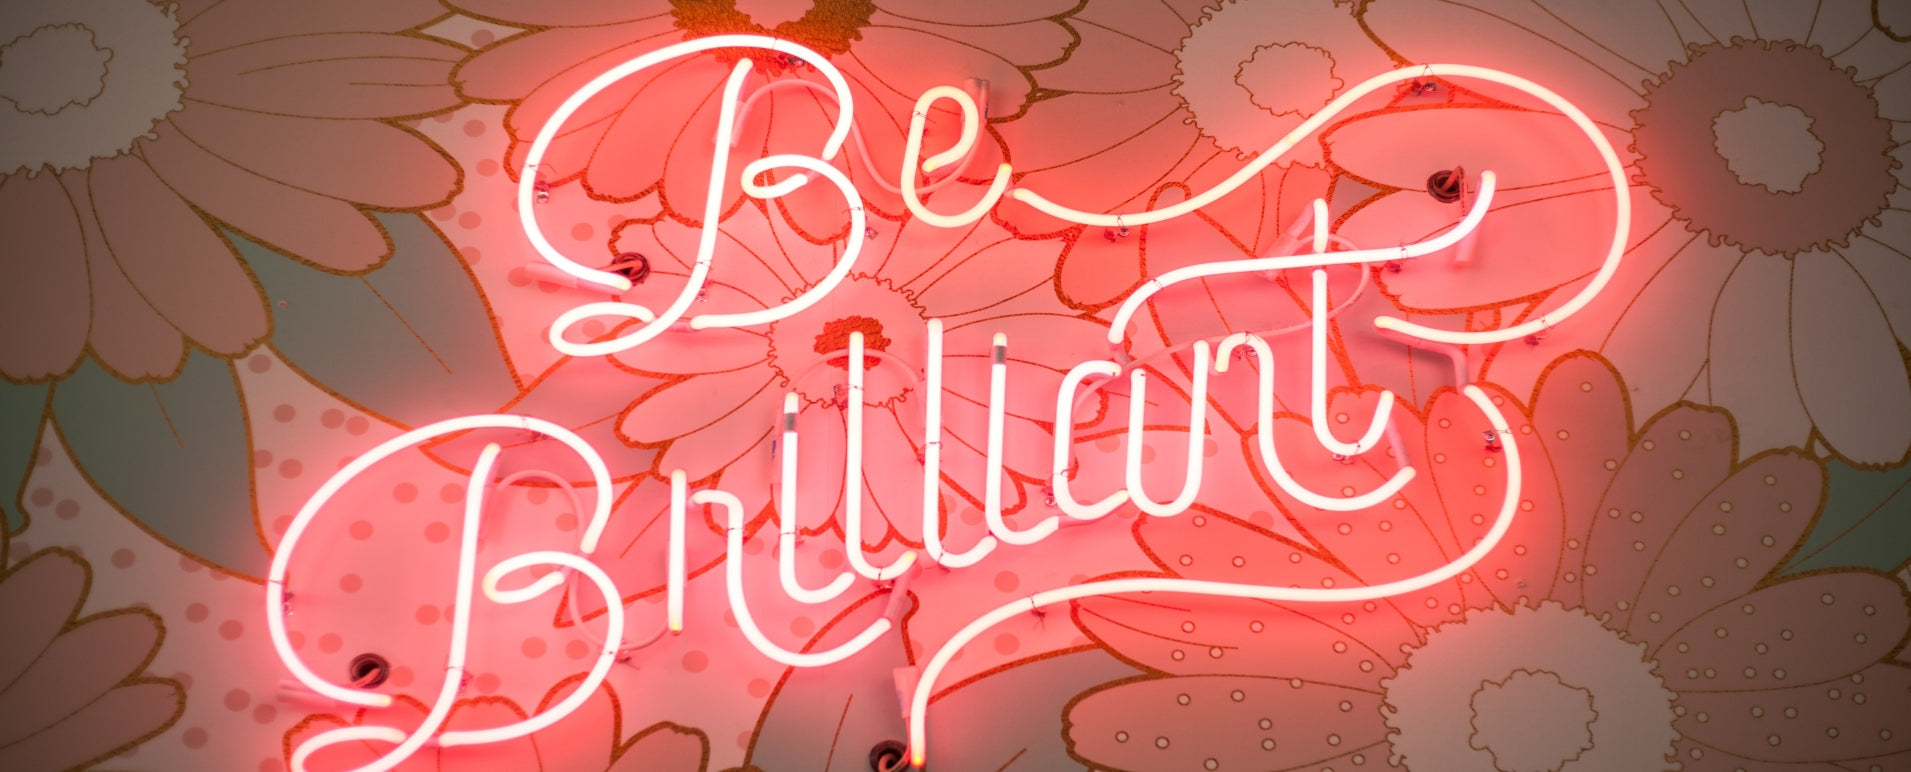 Be Brilliant Neon Sign